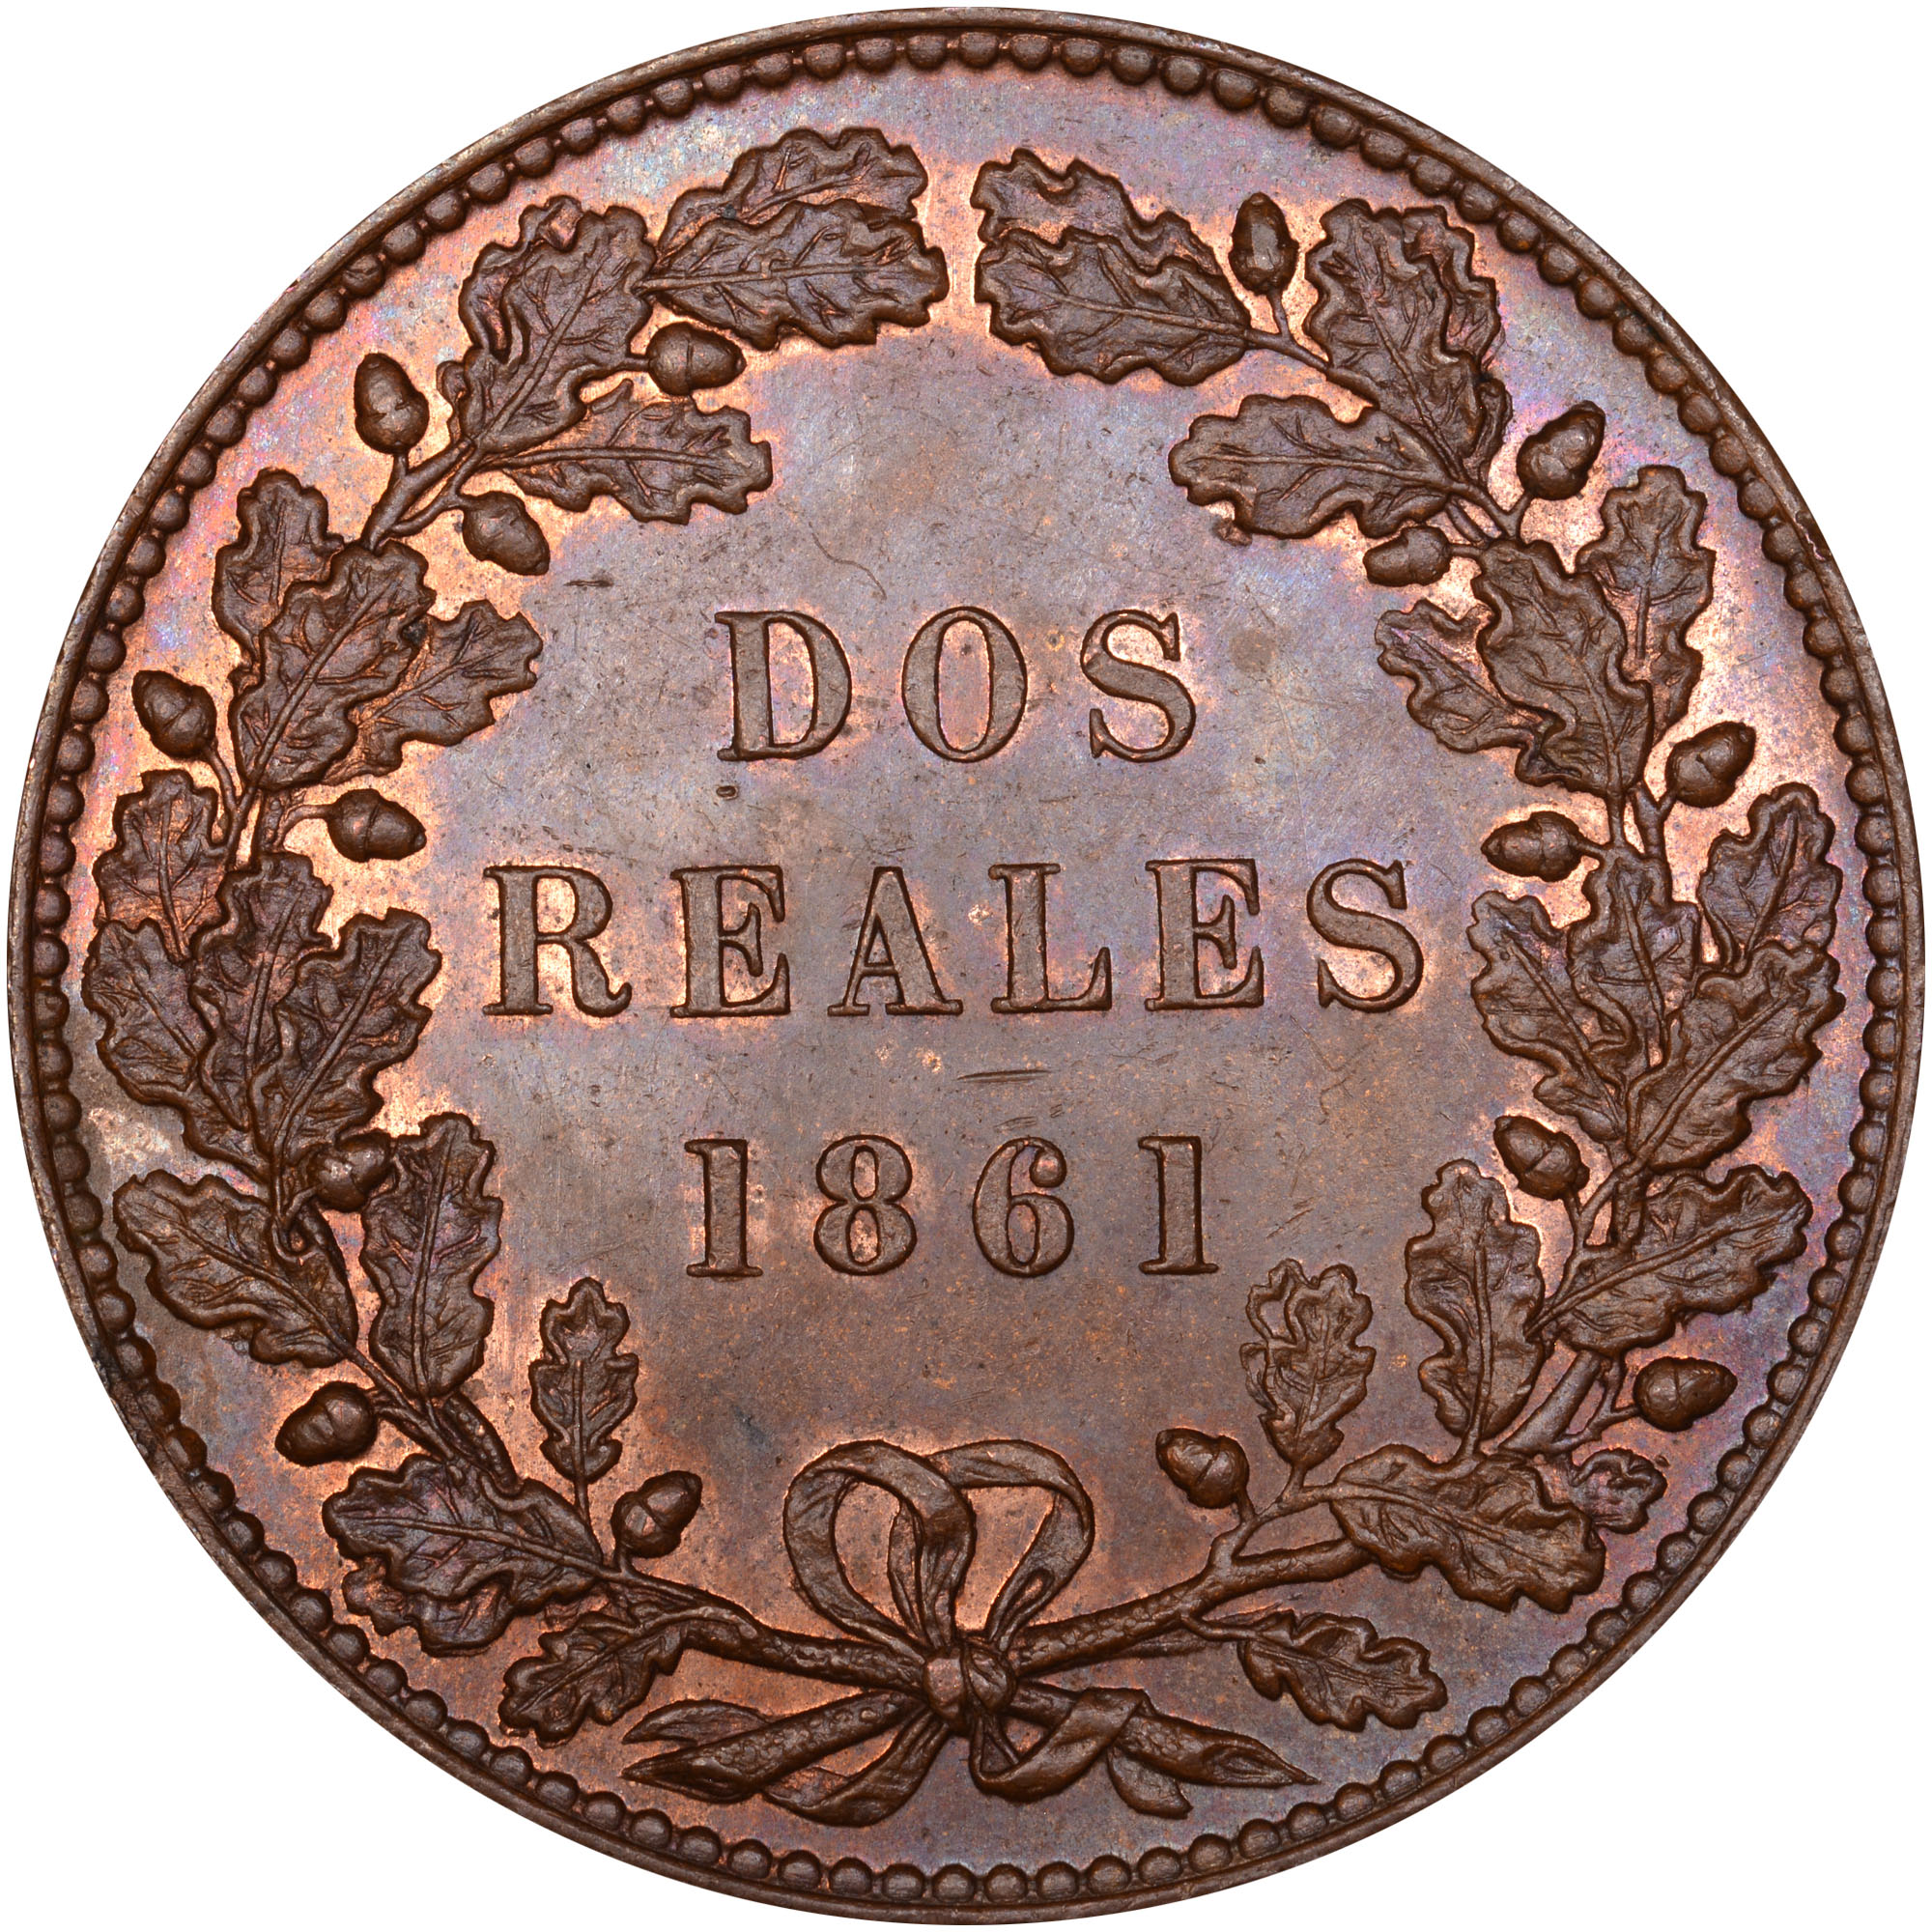 1860-1861 Argentina BUENOS AIRES 2 Reales obverse